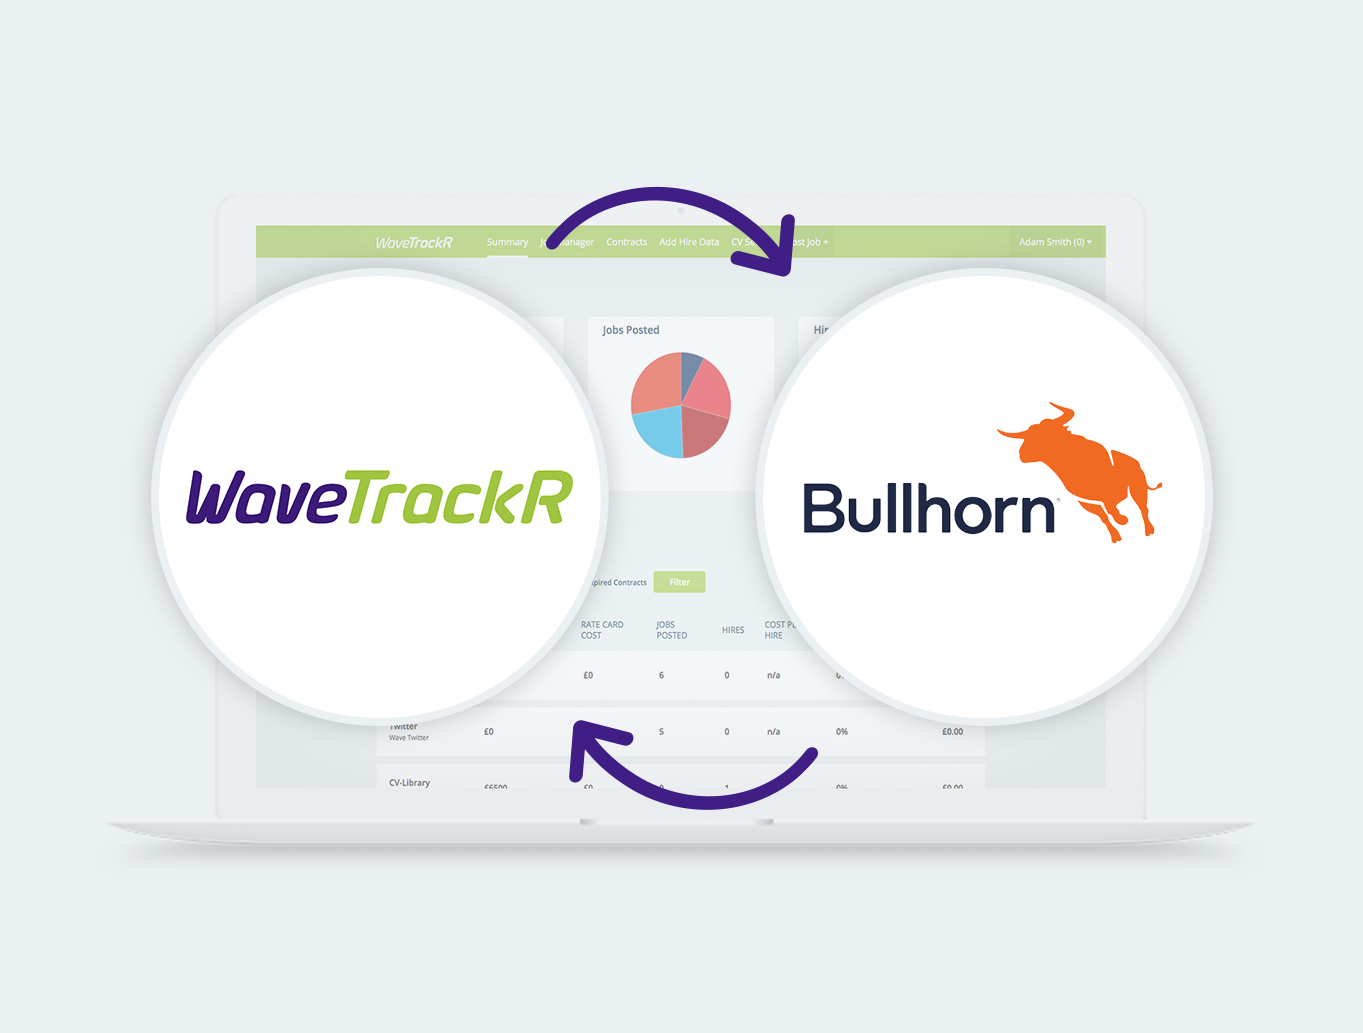 WaveTrack and Bullhorn integration image.